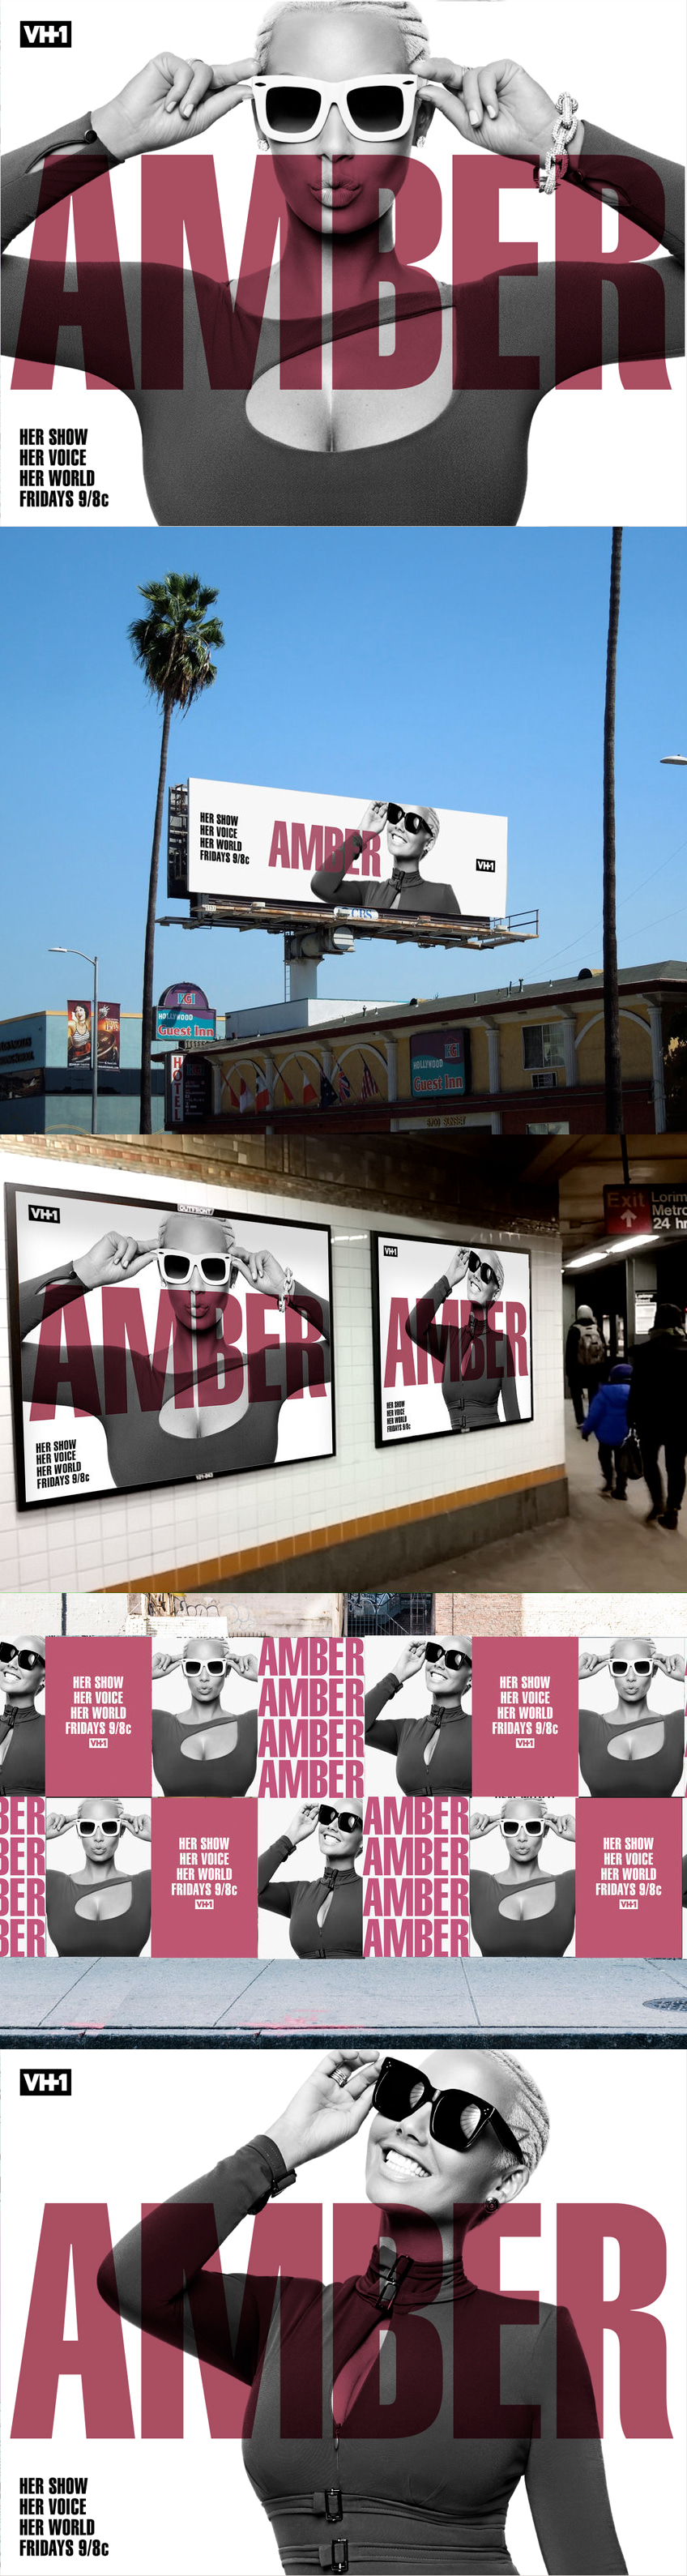 Amber Rose Show —Season 1 Out Of Home Advertising